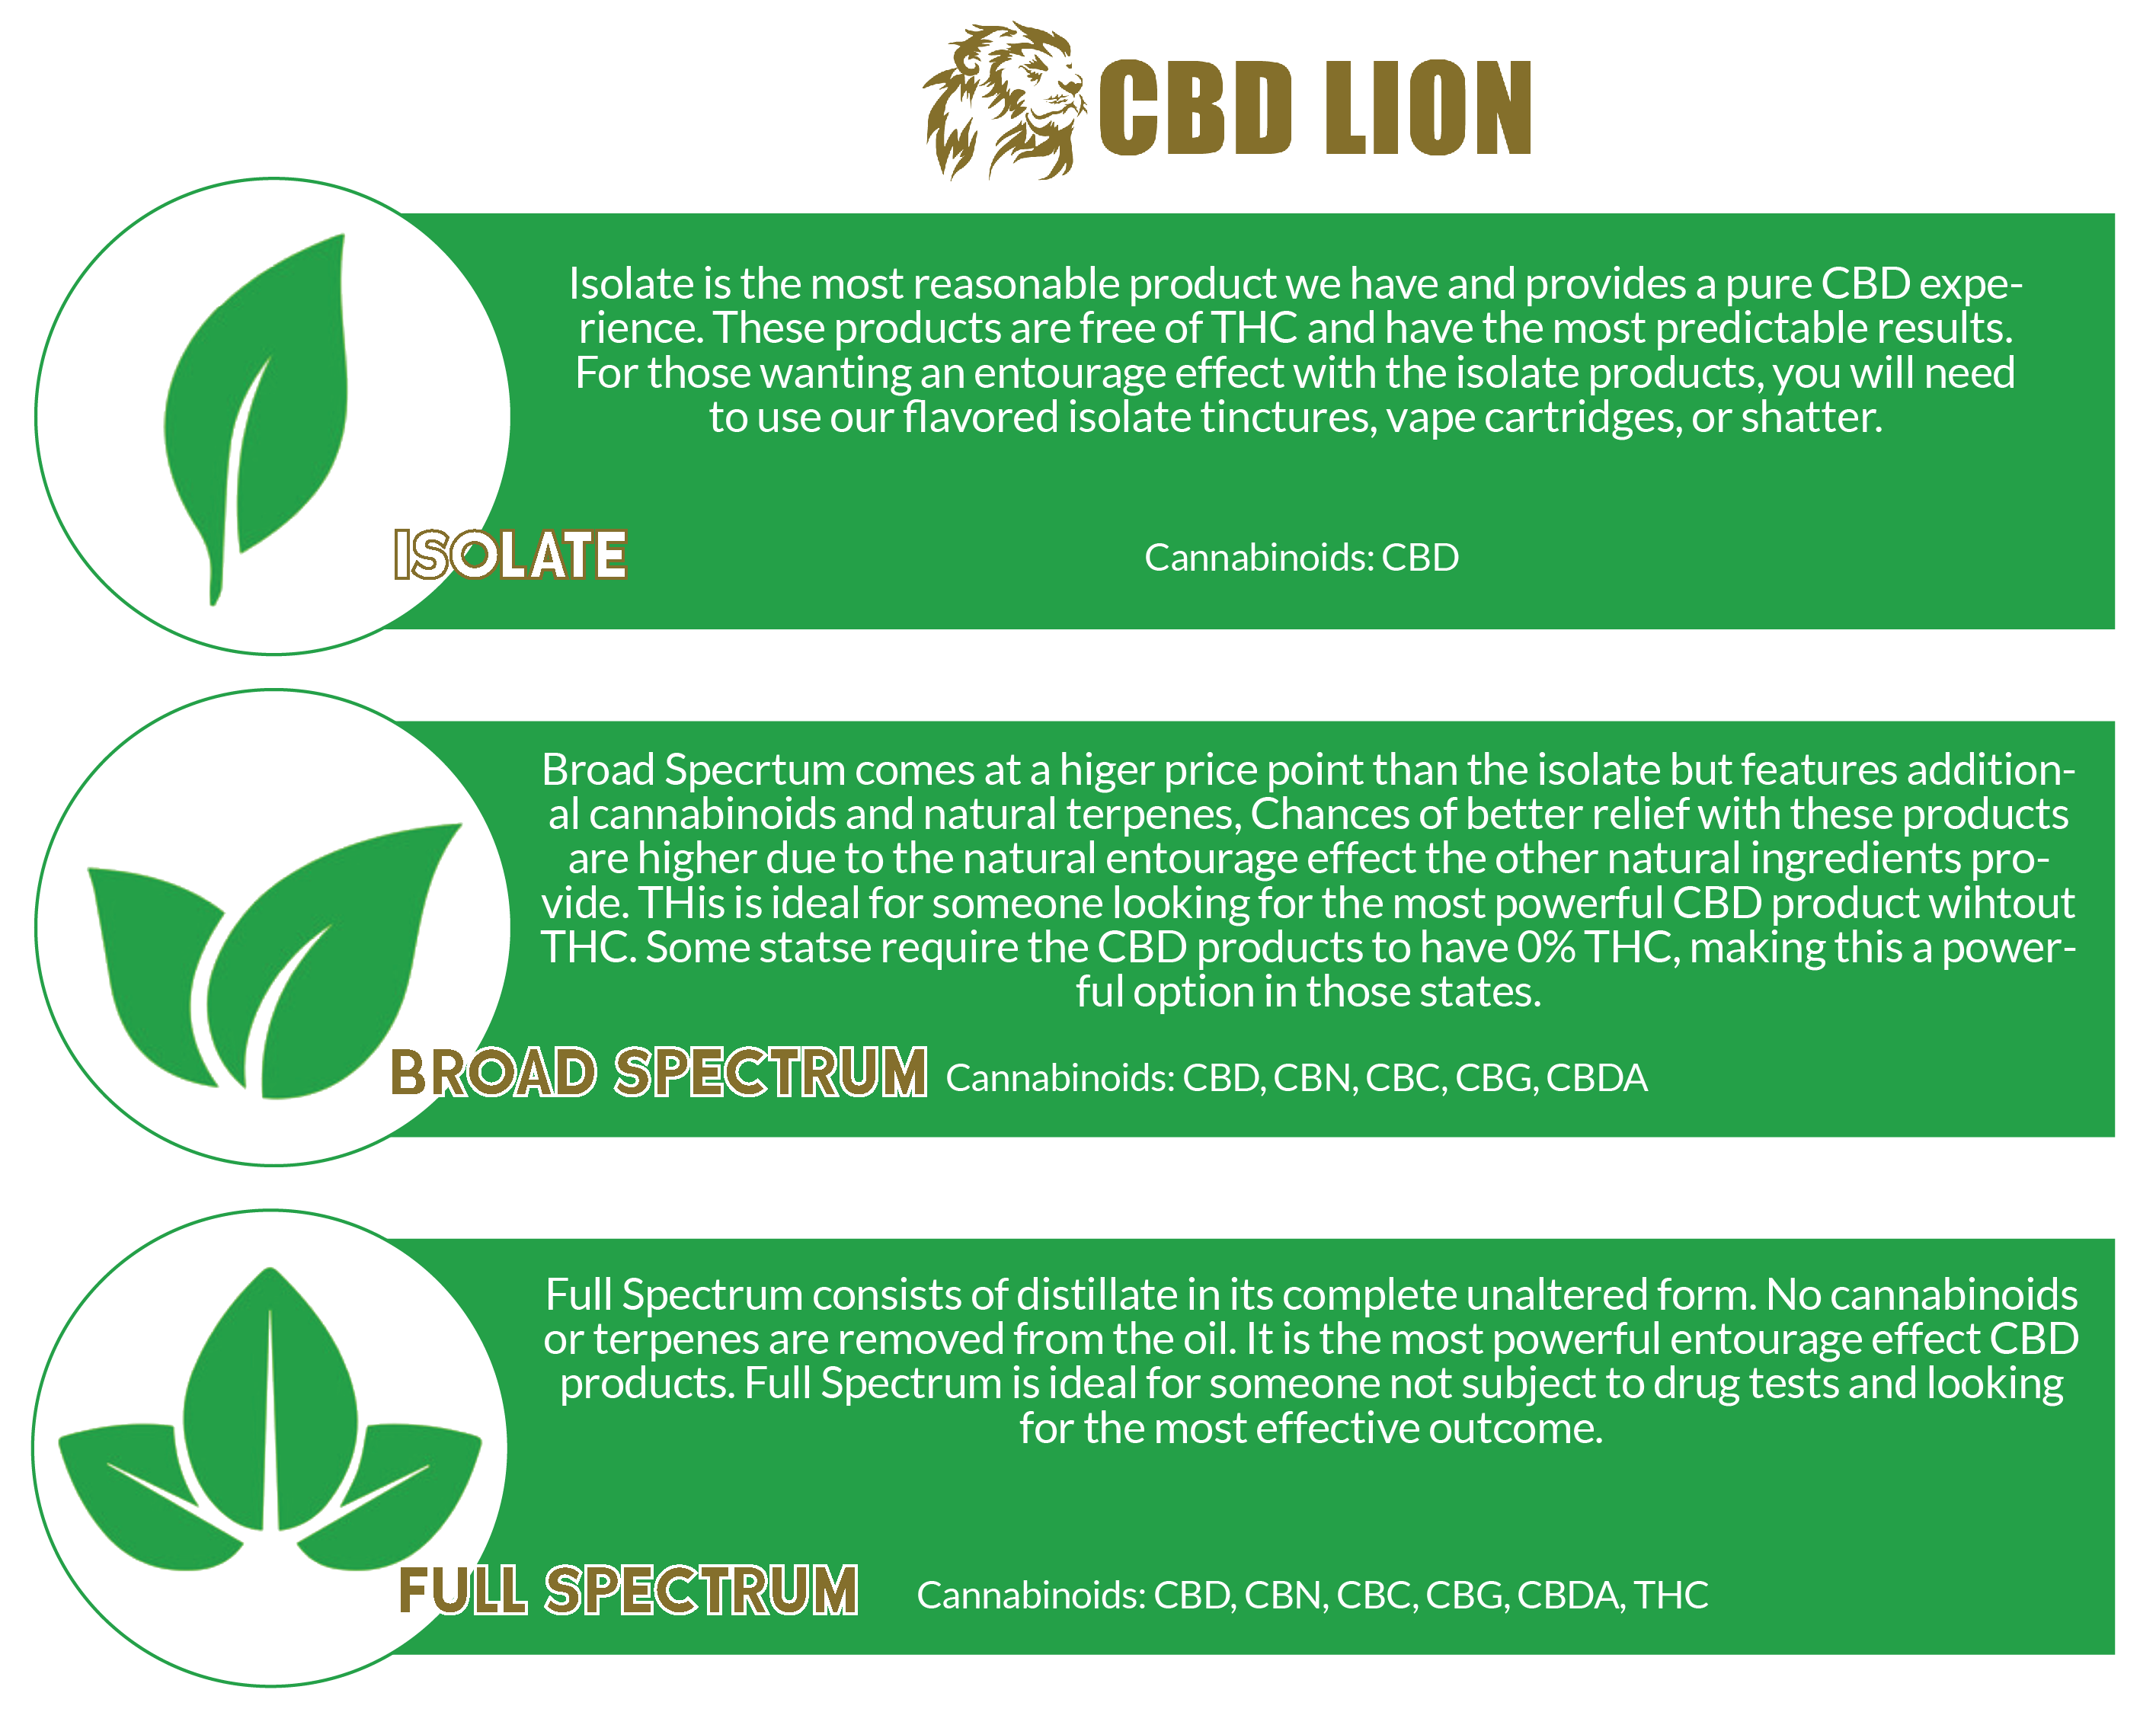 new-typesofhemp-infographic-cbdlion-isolate-broadspectrum-fullspectrum-01.png